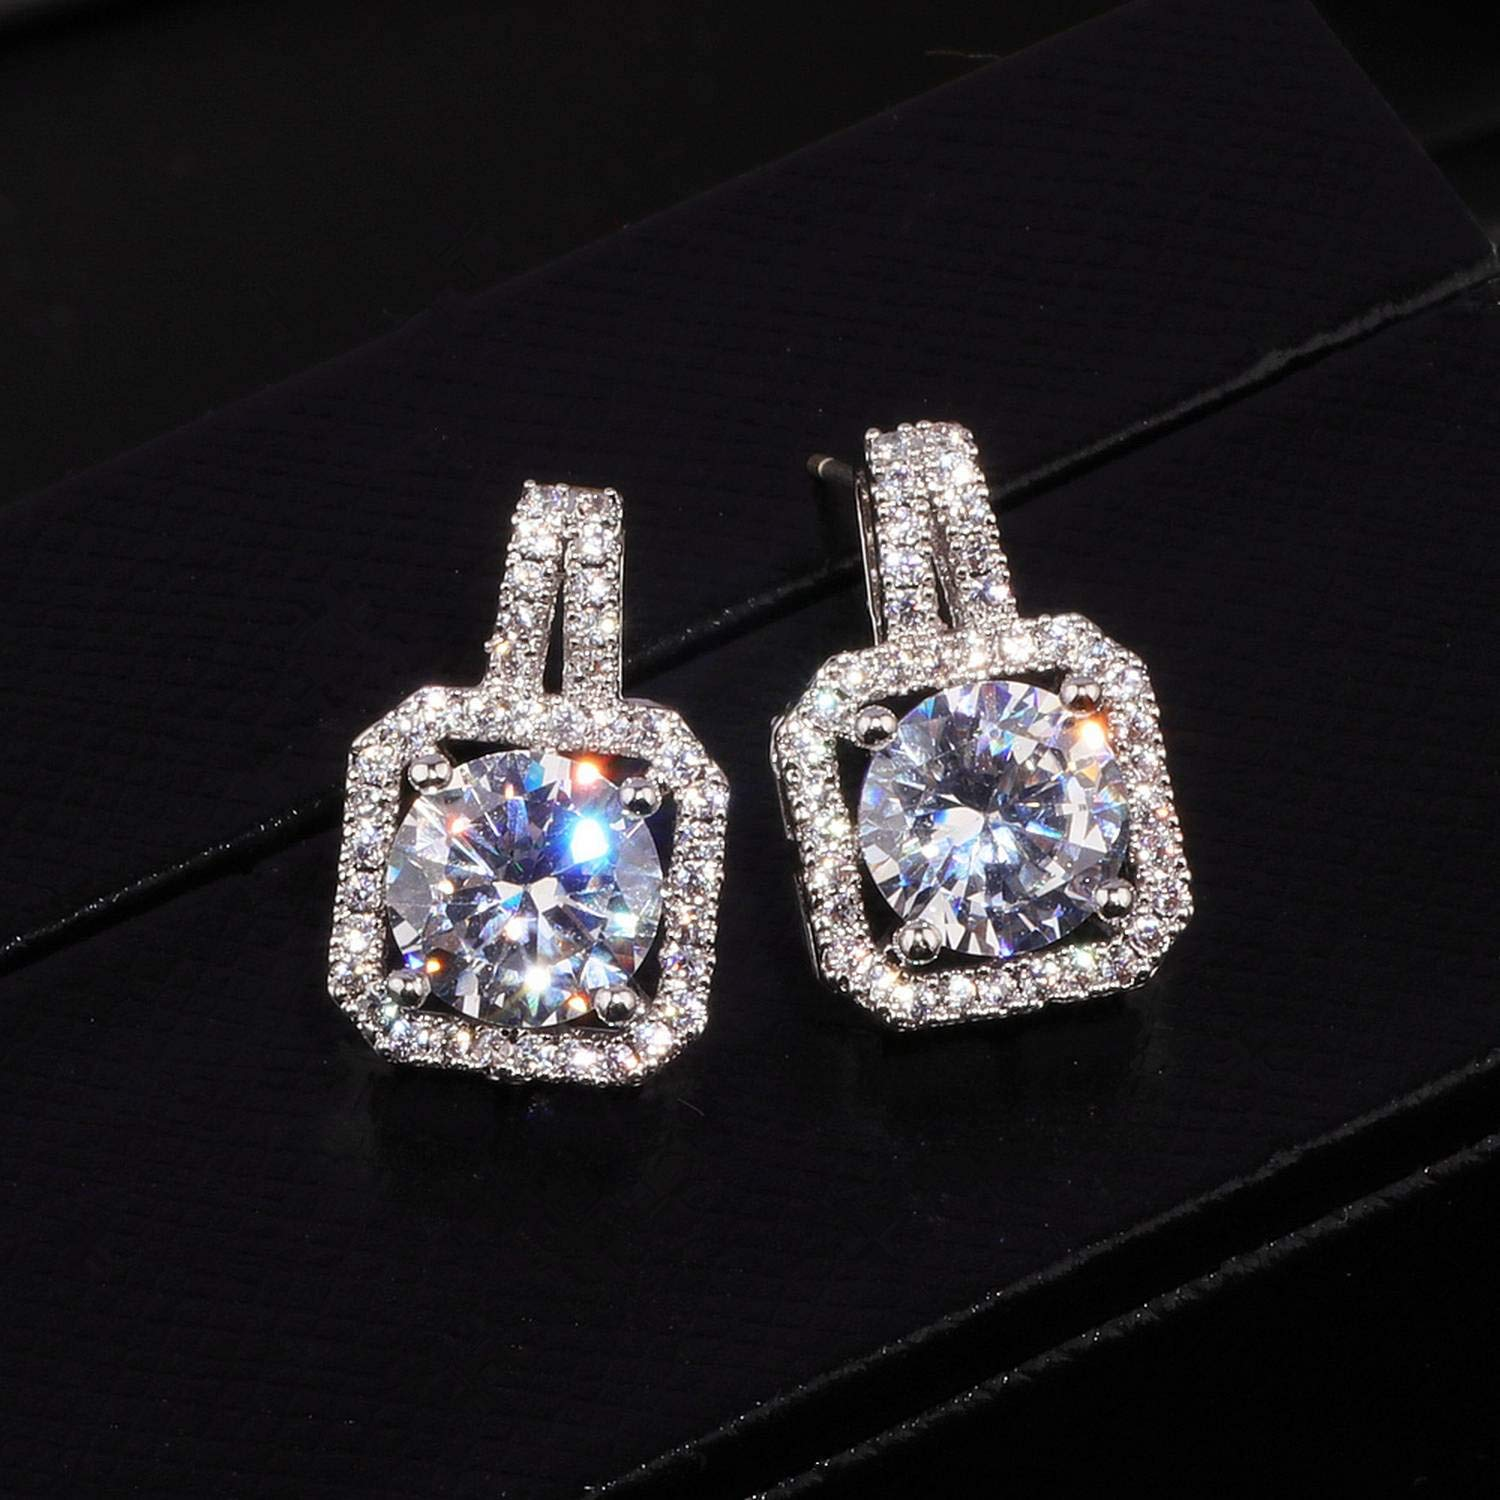 OL Style Luxury Square Austrian Clear Cubic Zirconia Earrings for Women Fashion Party Elegant Wedding Stud Earrings Jewelry E175